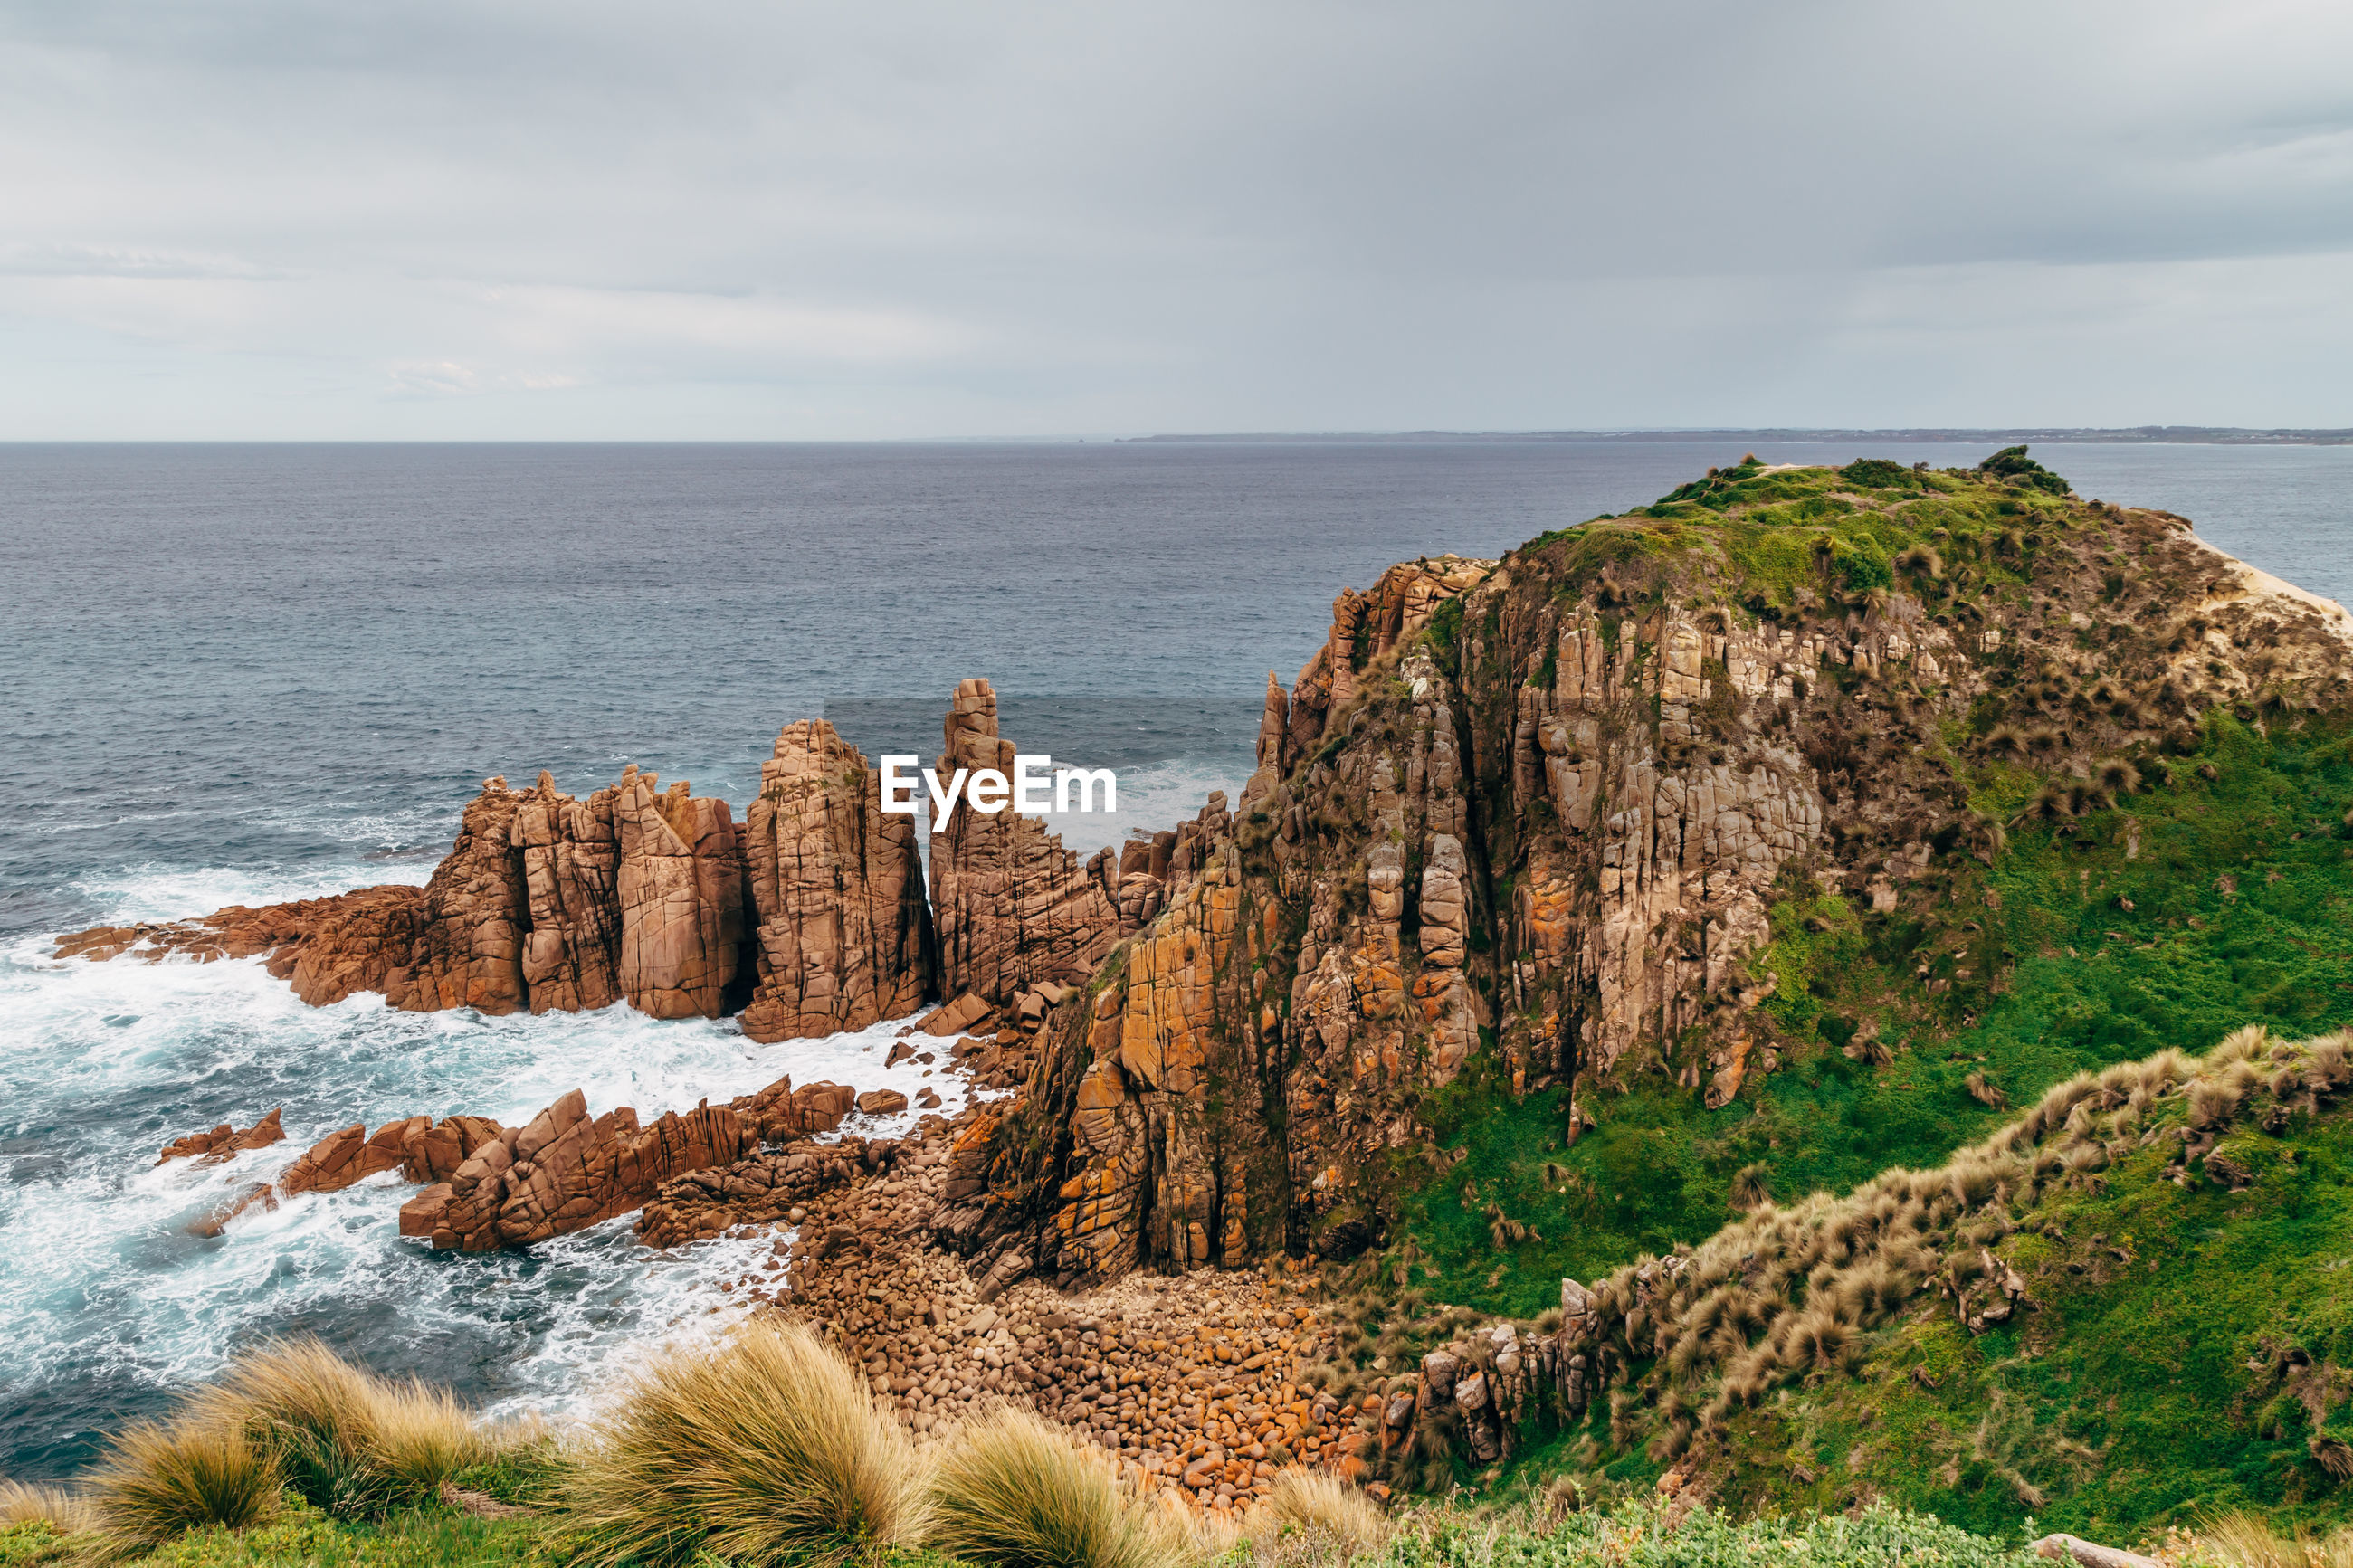 SCENIC VIEW OF SEA AND ROCKS AGAINST SKY